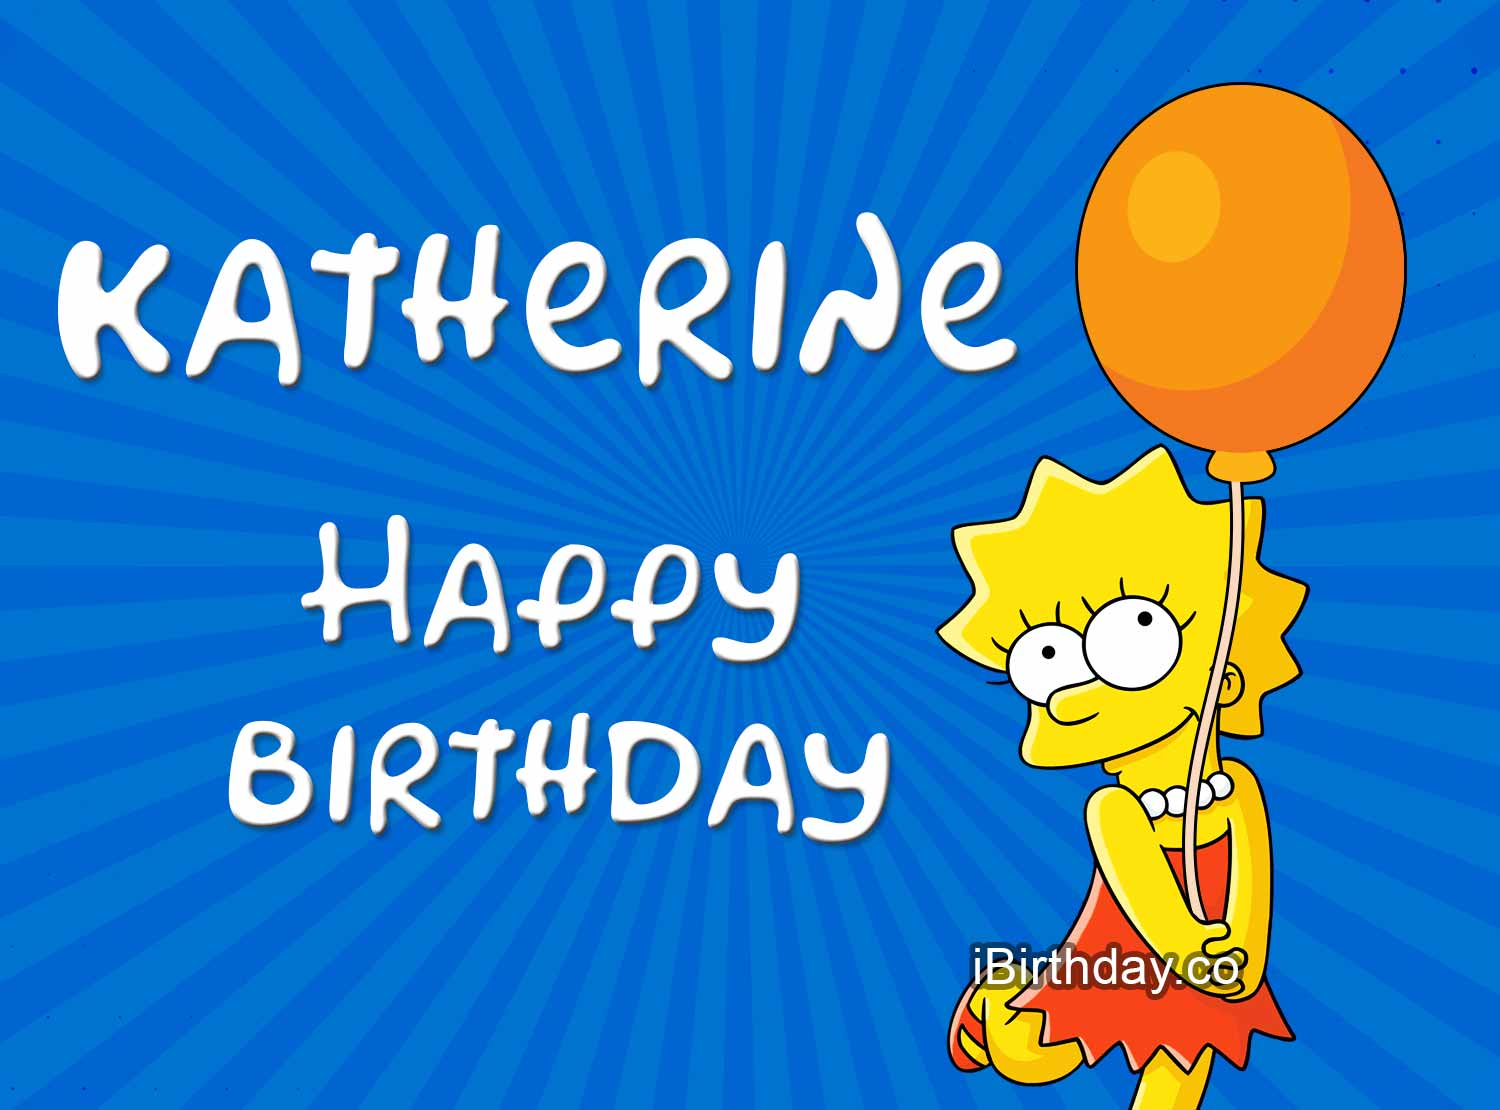 Katherine Lisa Simpson Birthday Meme